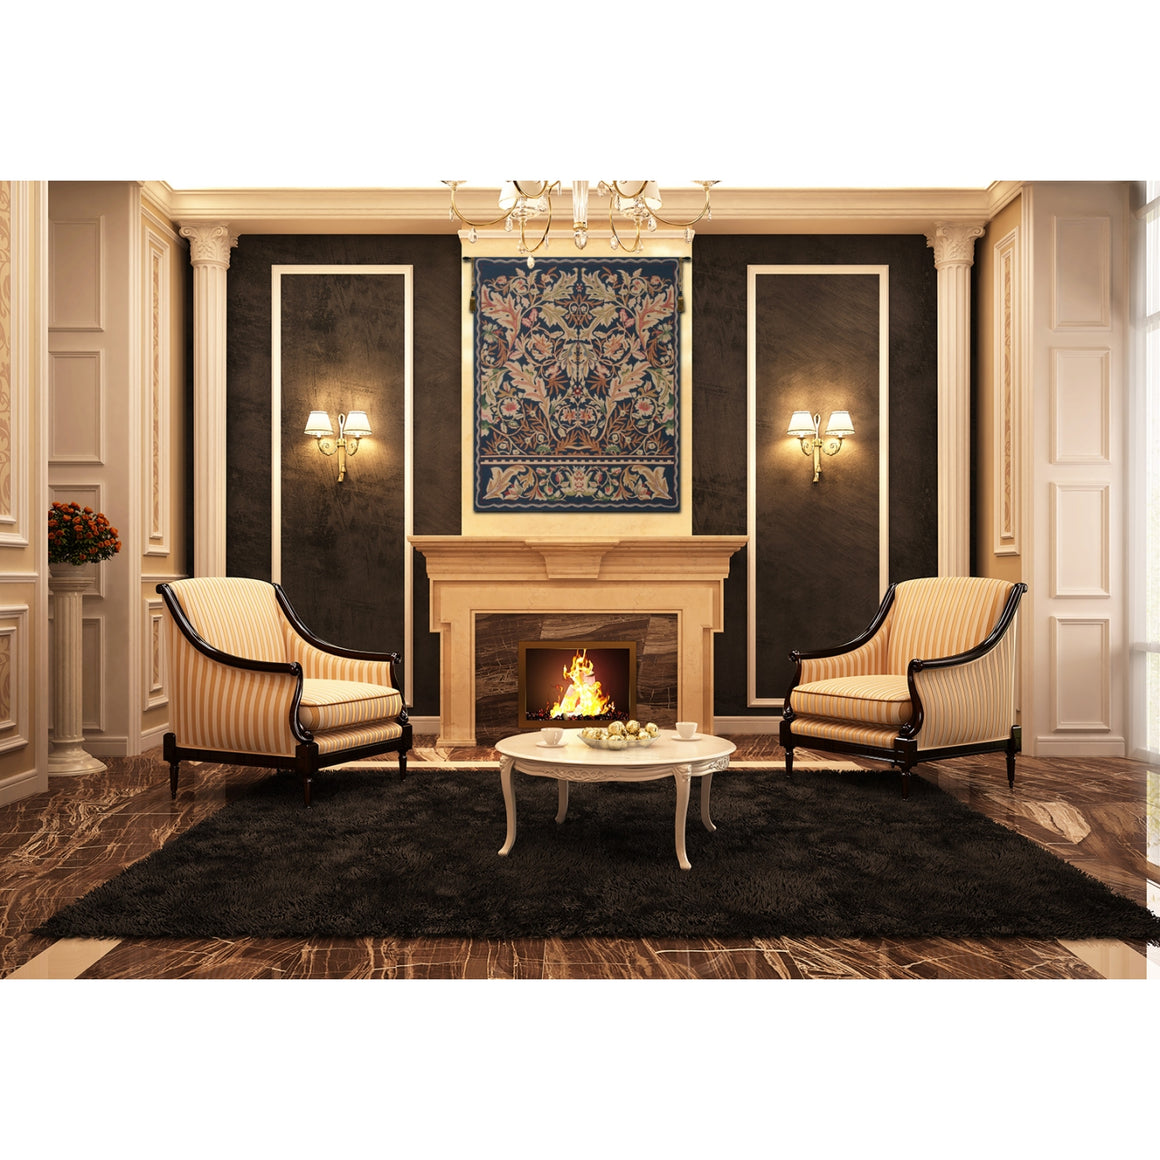 Acanthus II Woven Wall Tapestries